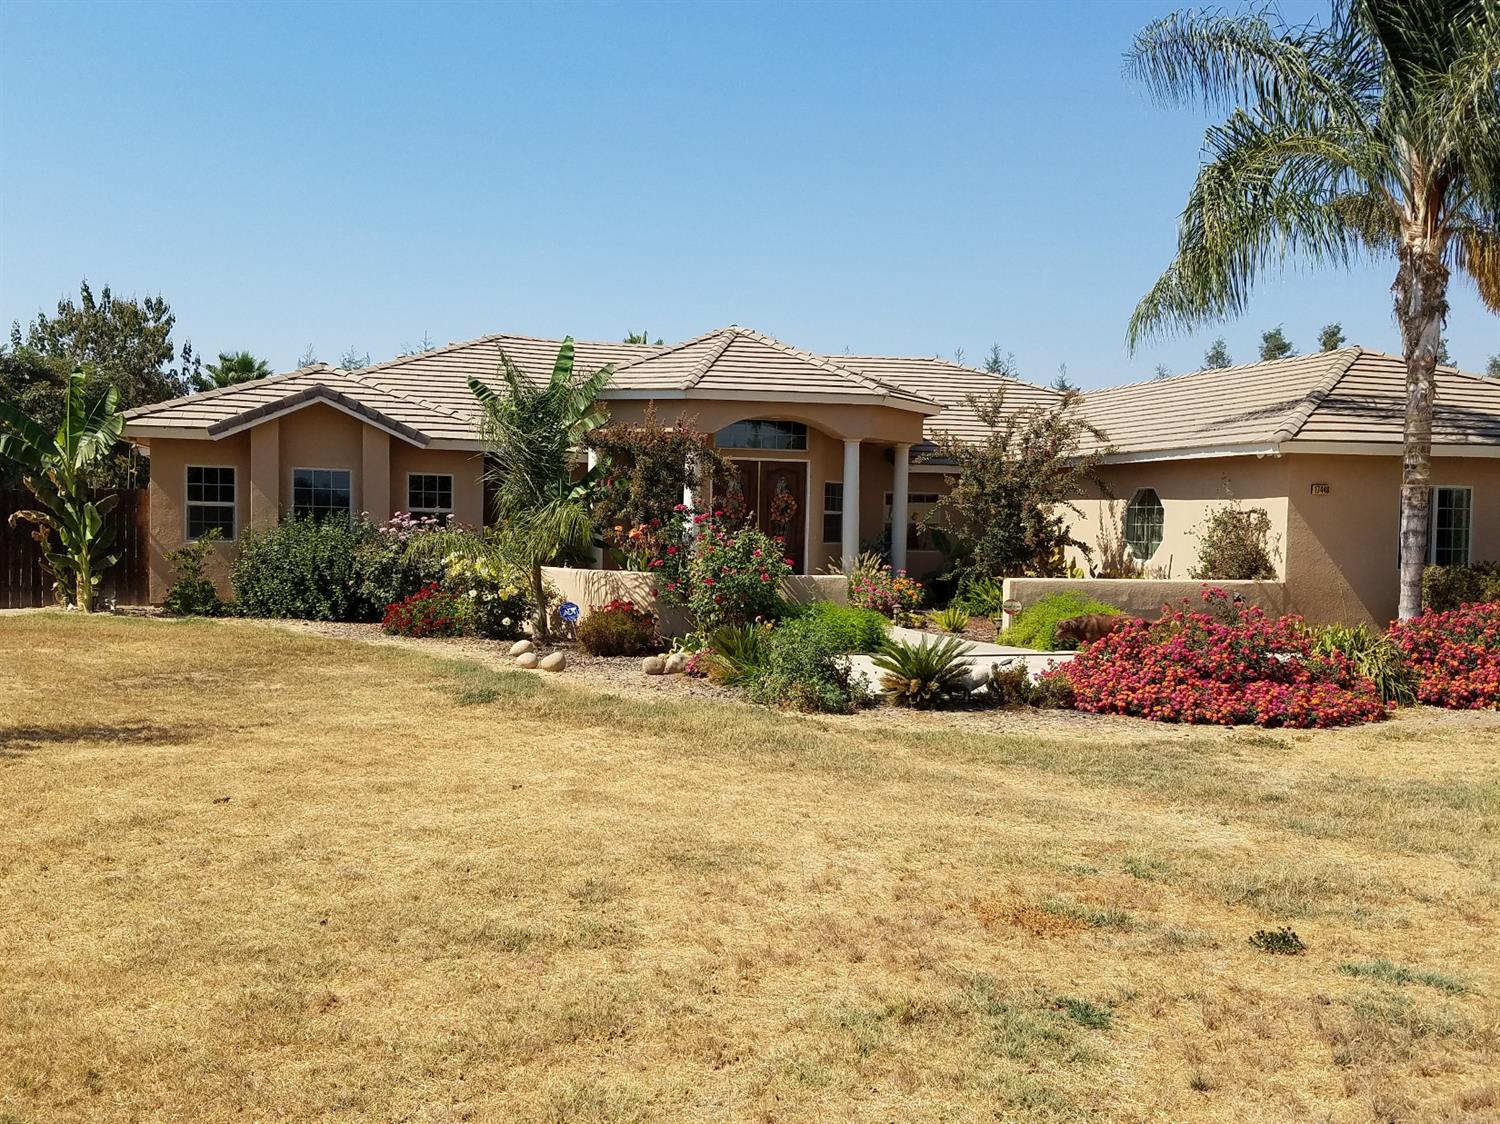 17448 Island Drive, Madera, CA - USA (photo 1)